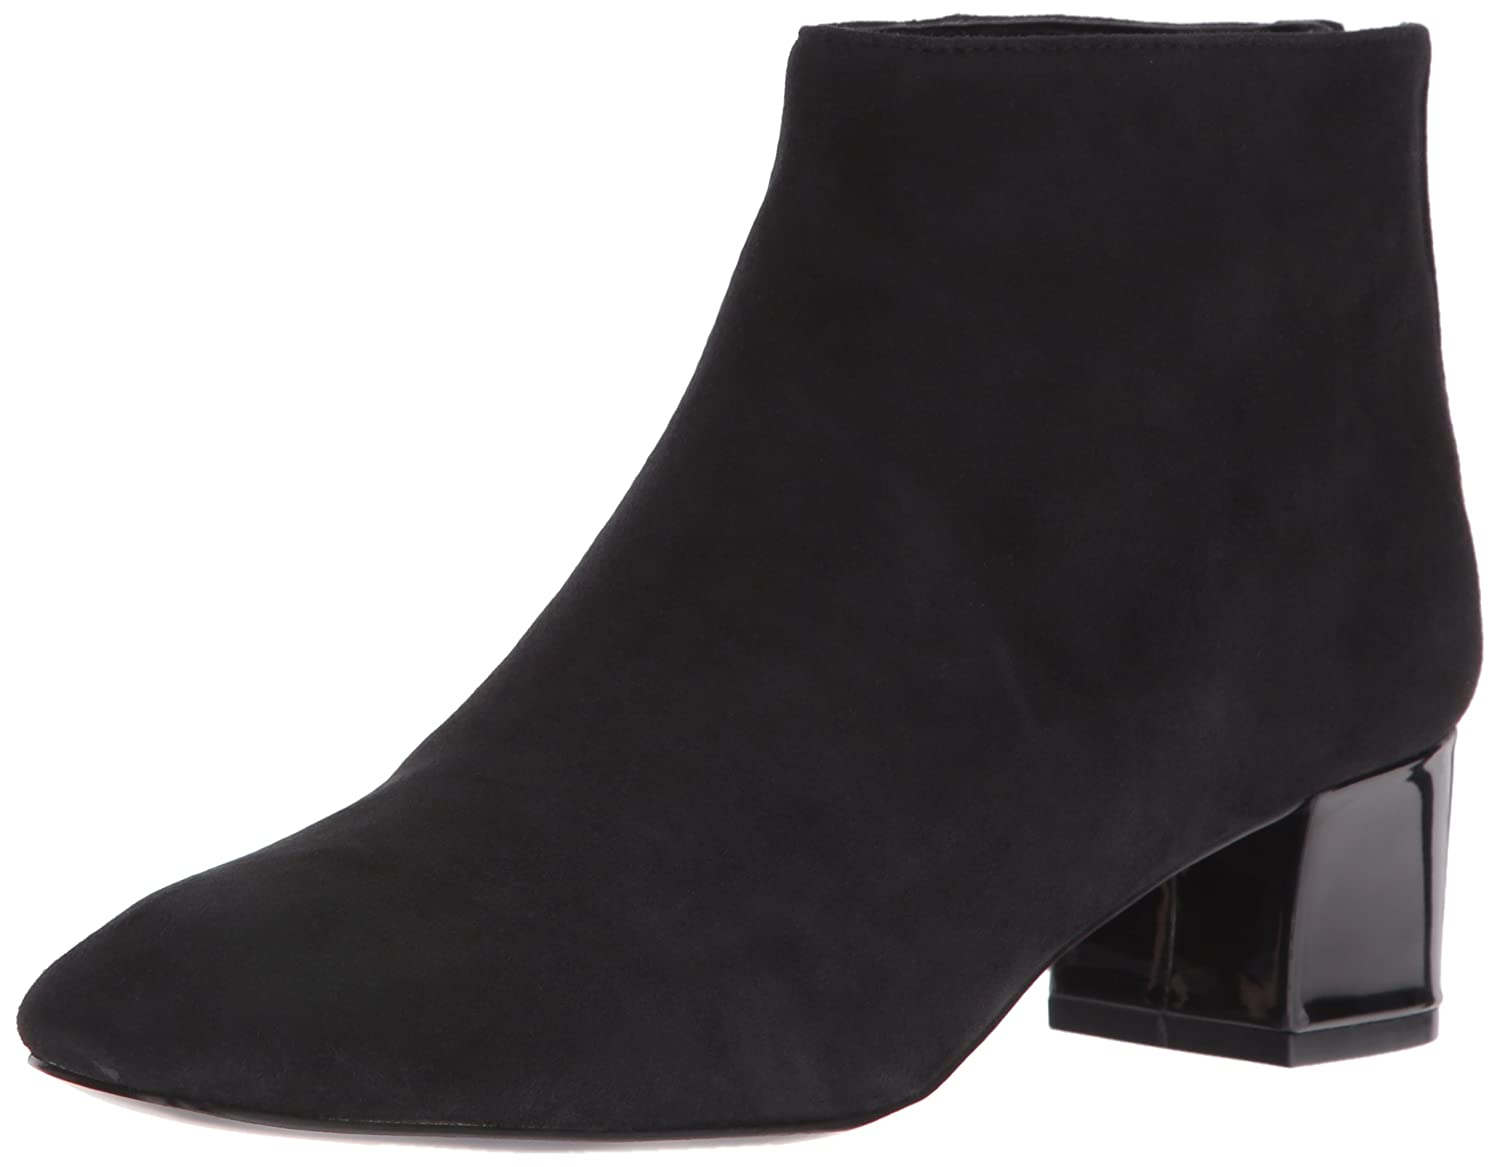 Nine West Women's Anna Ankle Bootie B01EY34MSY 10.5 B(M) US|Black